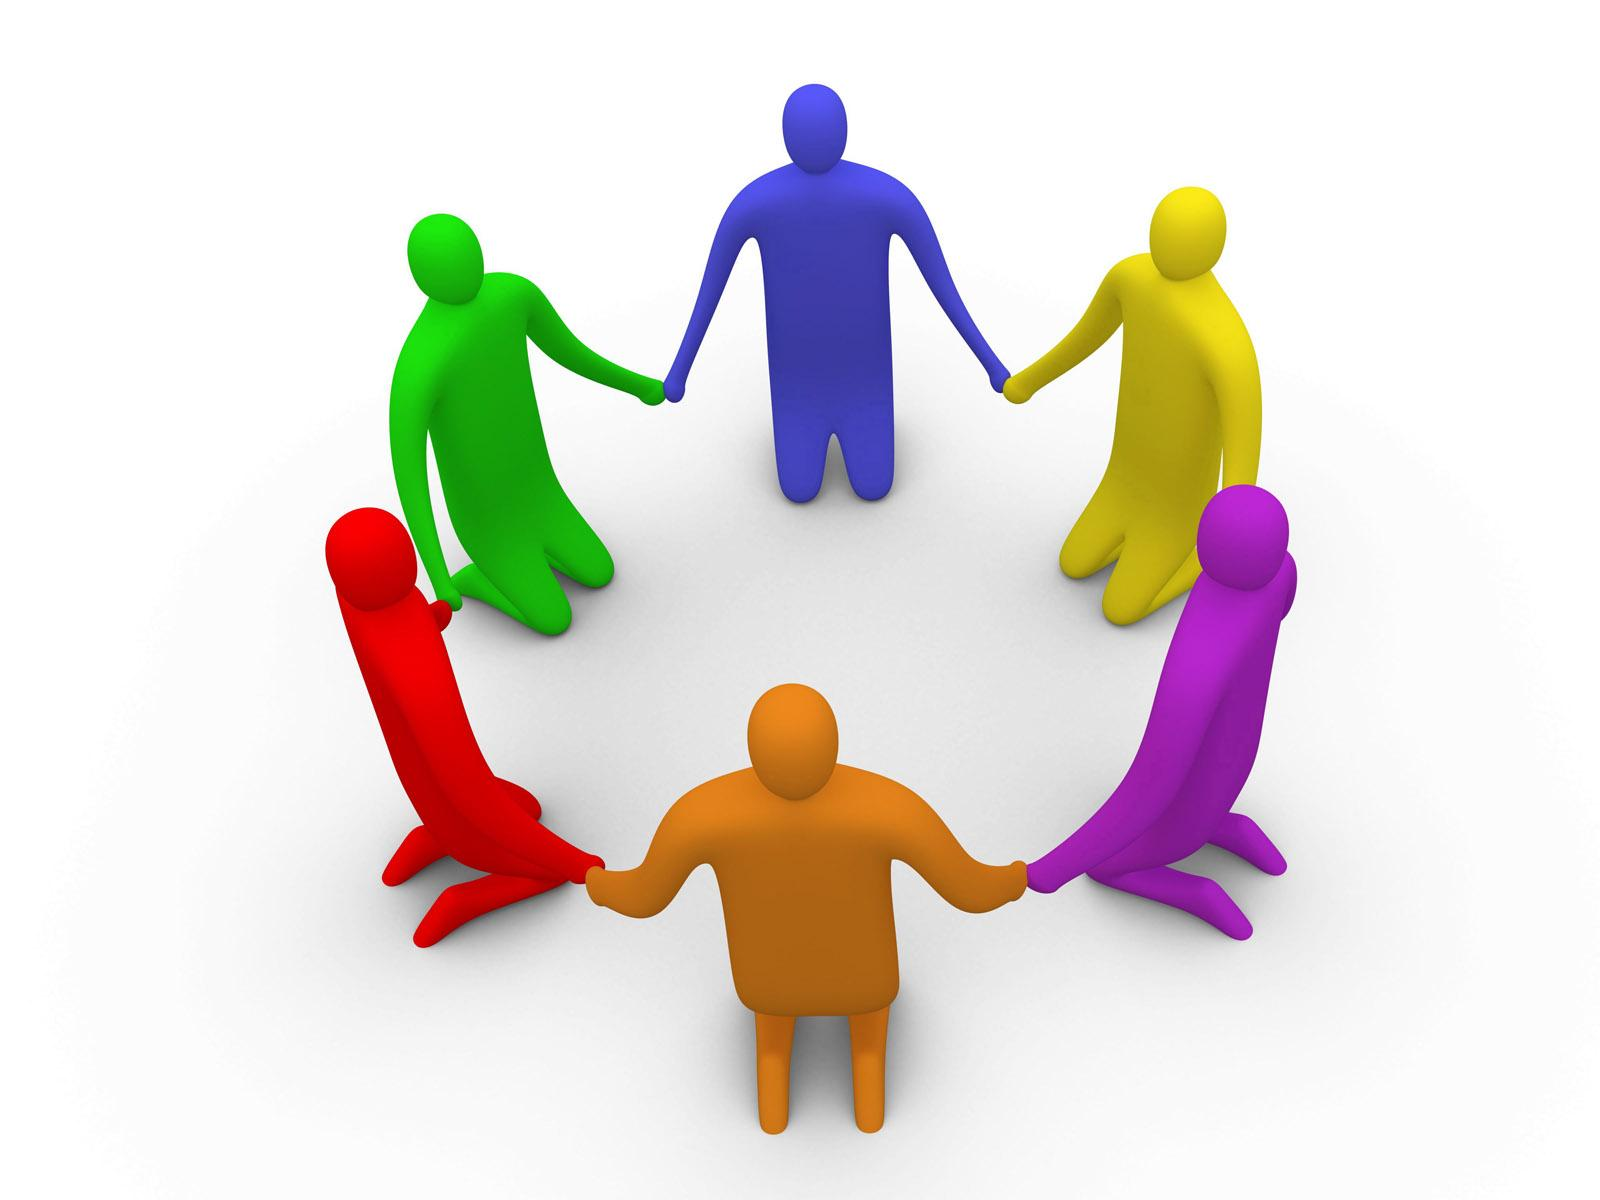 1600x1200 Animated Teamwork Clipart